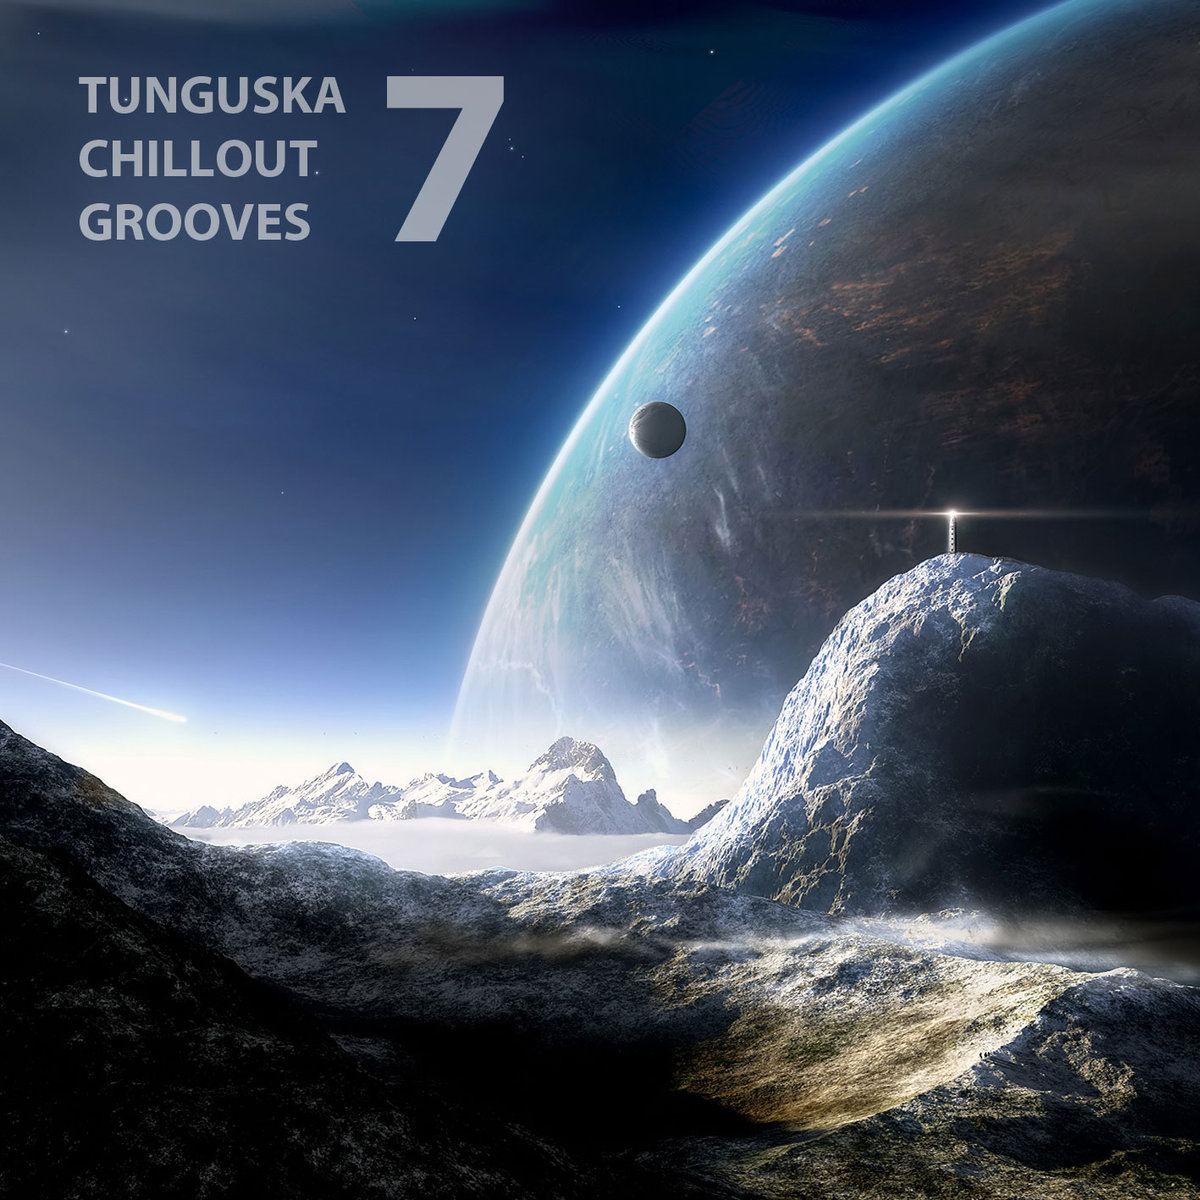 Tunguska Chillout Grooves - Volume 7 (artwork)